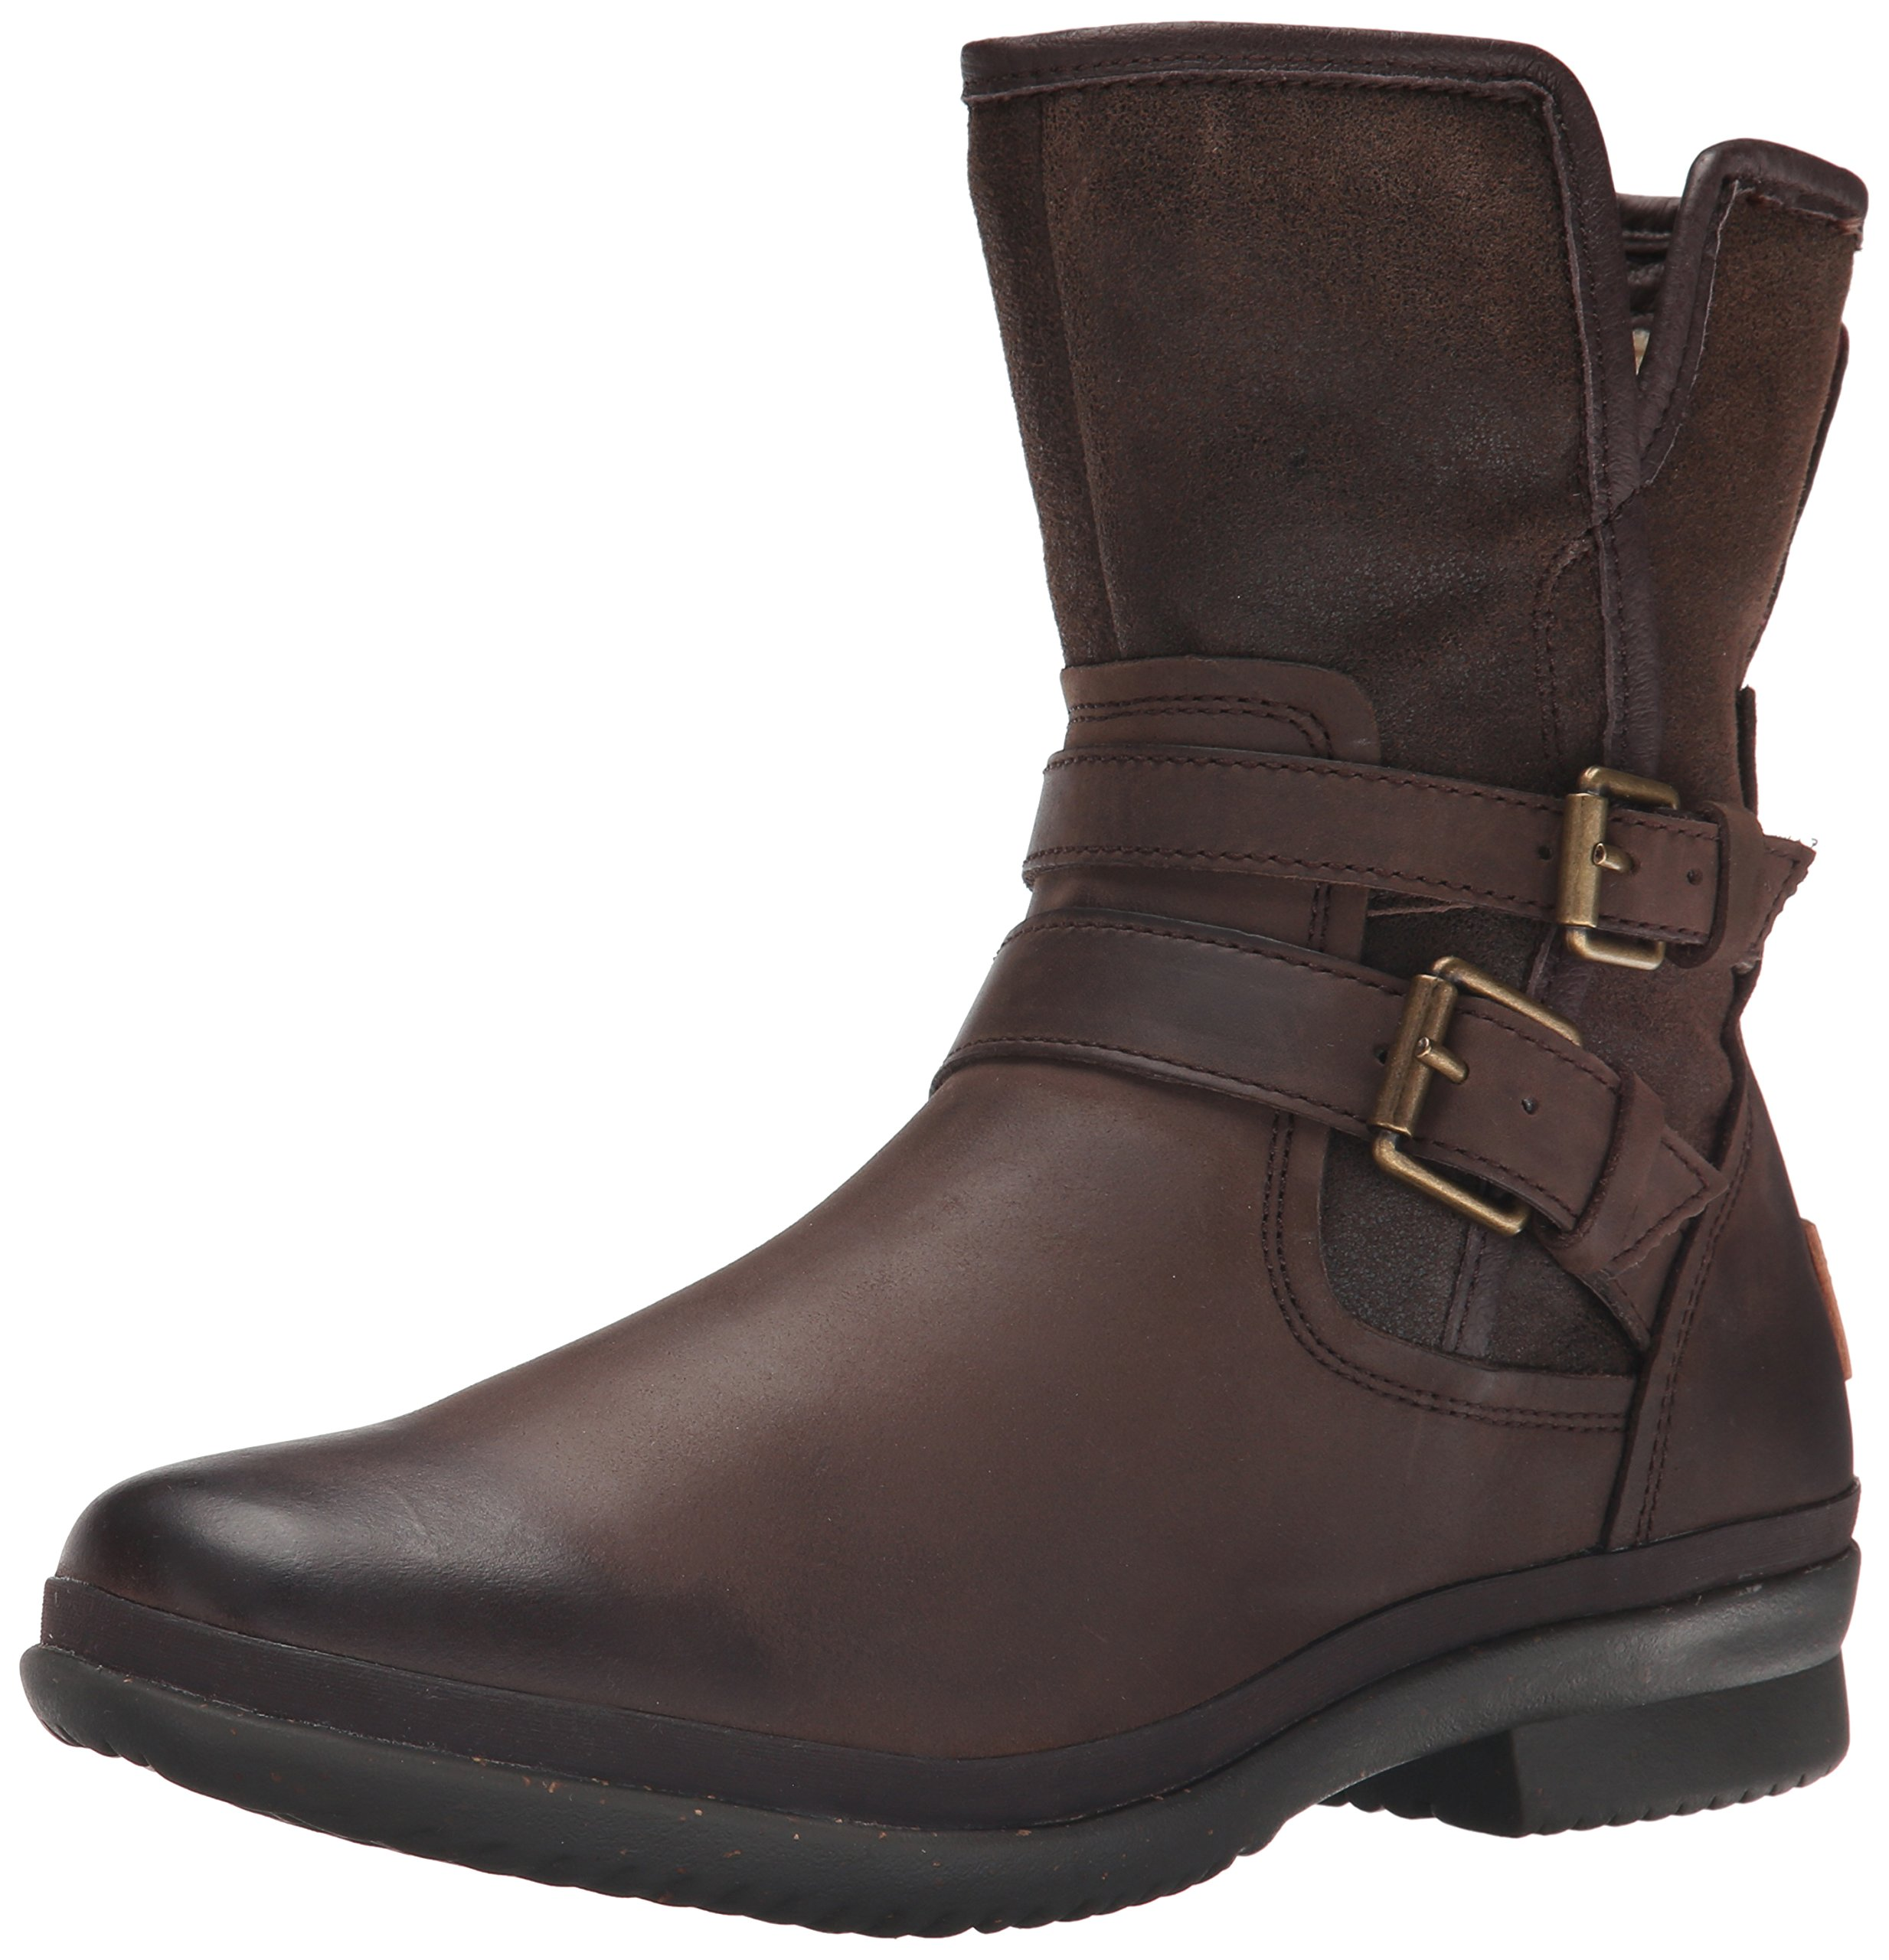 UGG Women's Simmens Leather Rain Boot, Stout Leather - 12 B(M) US